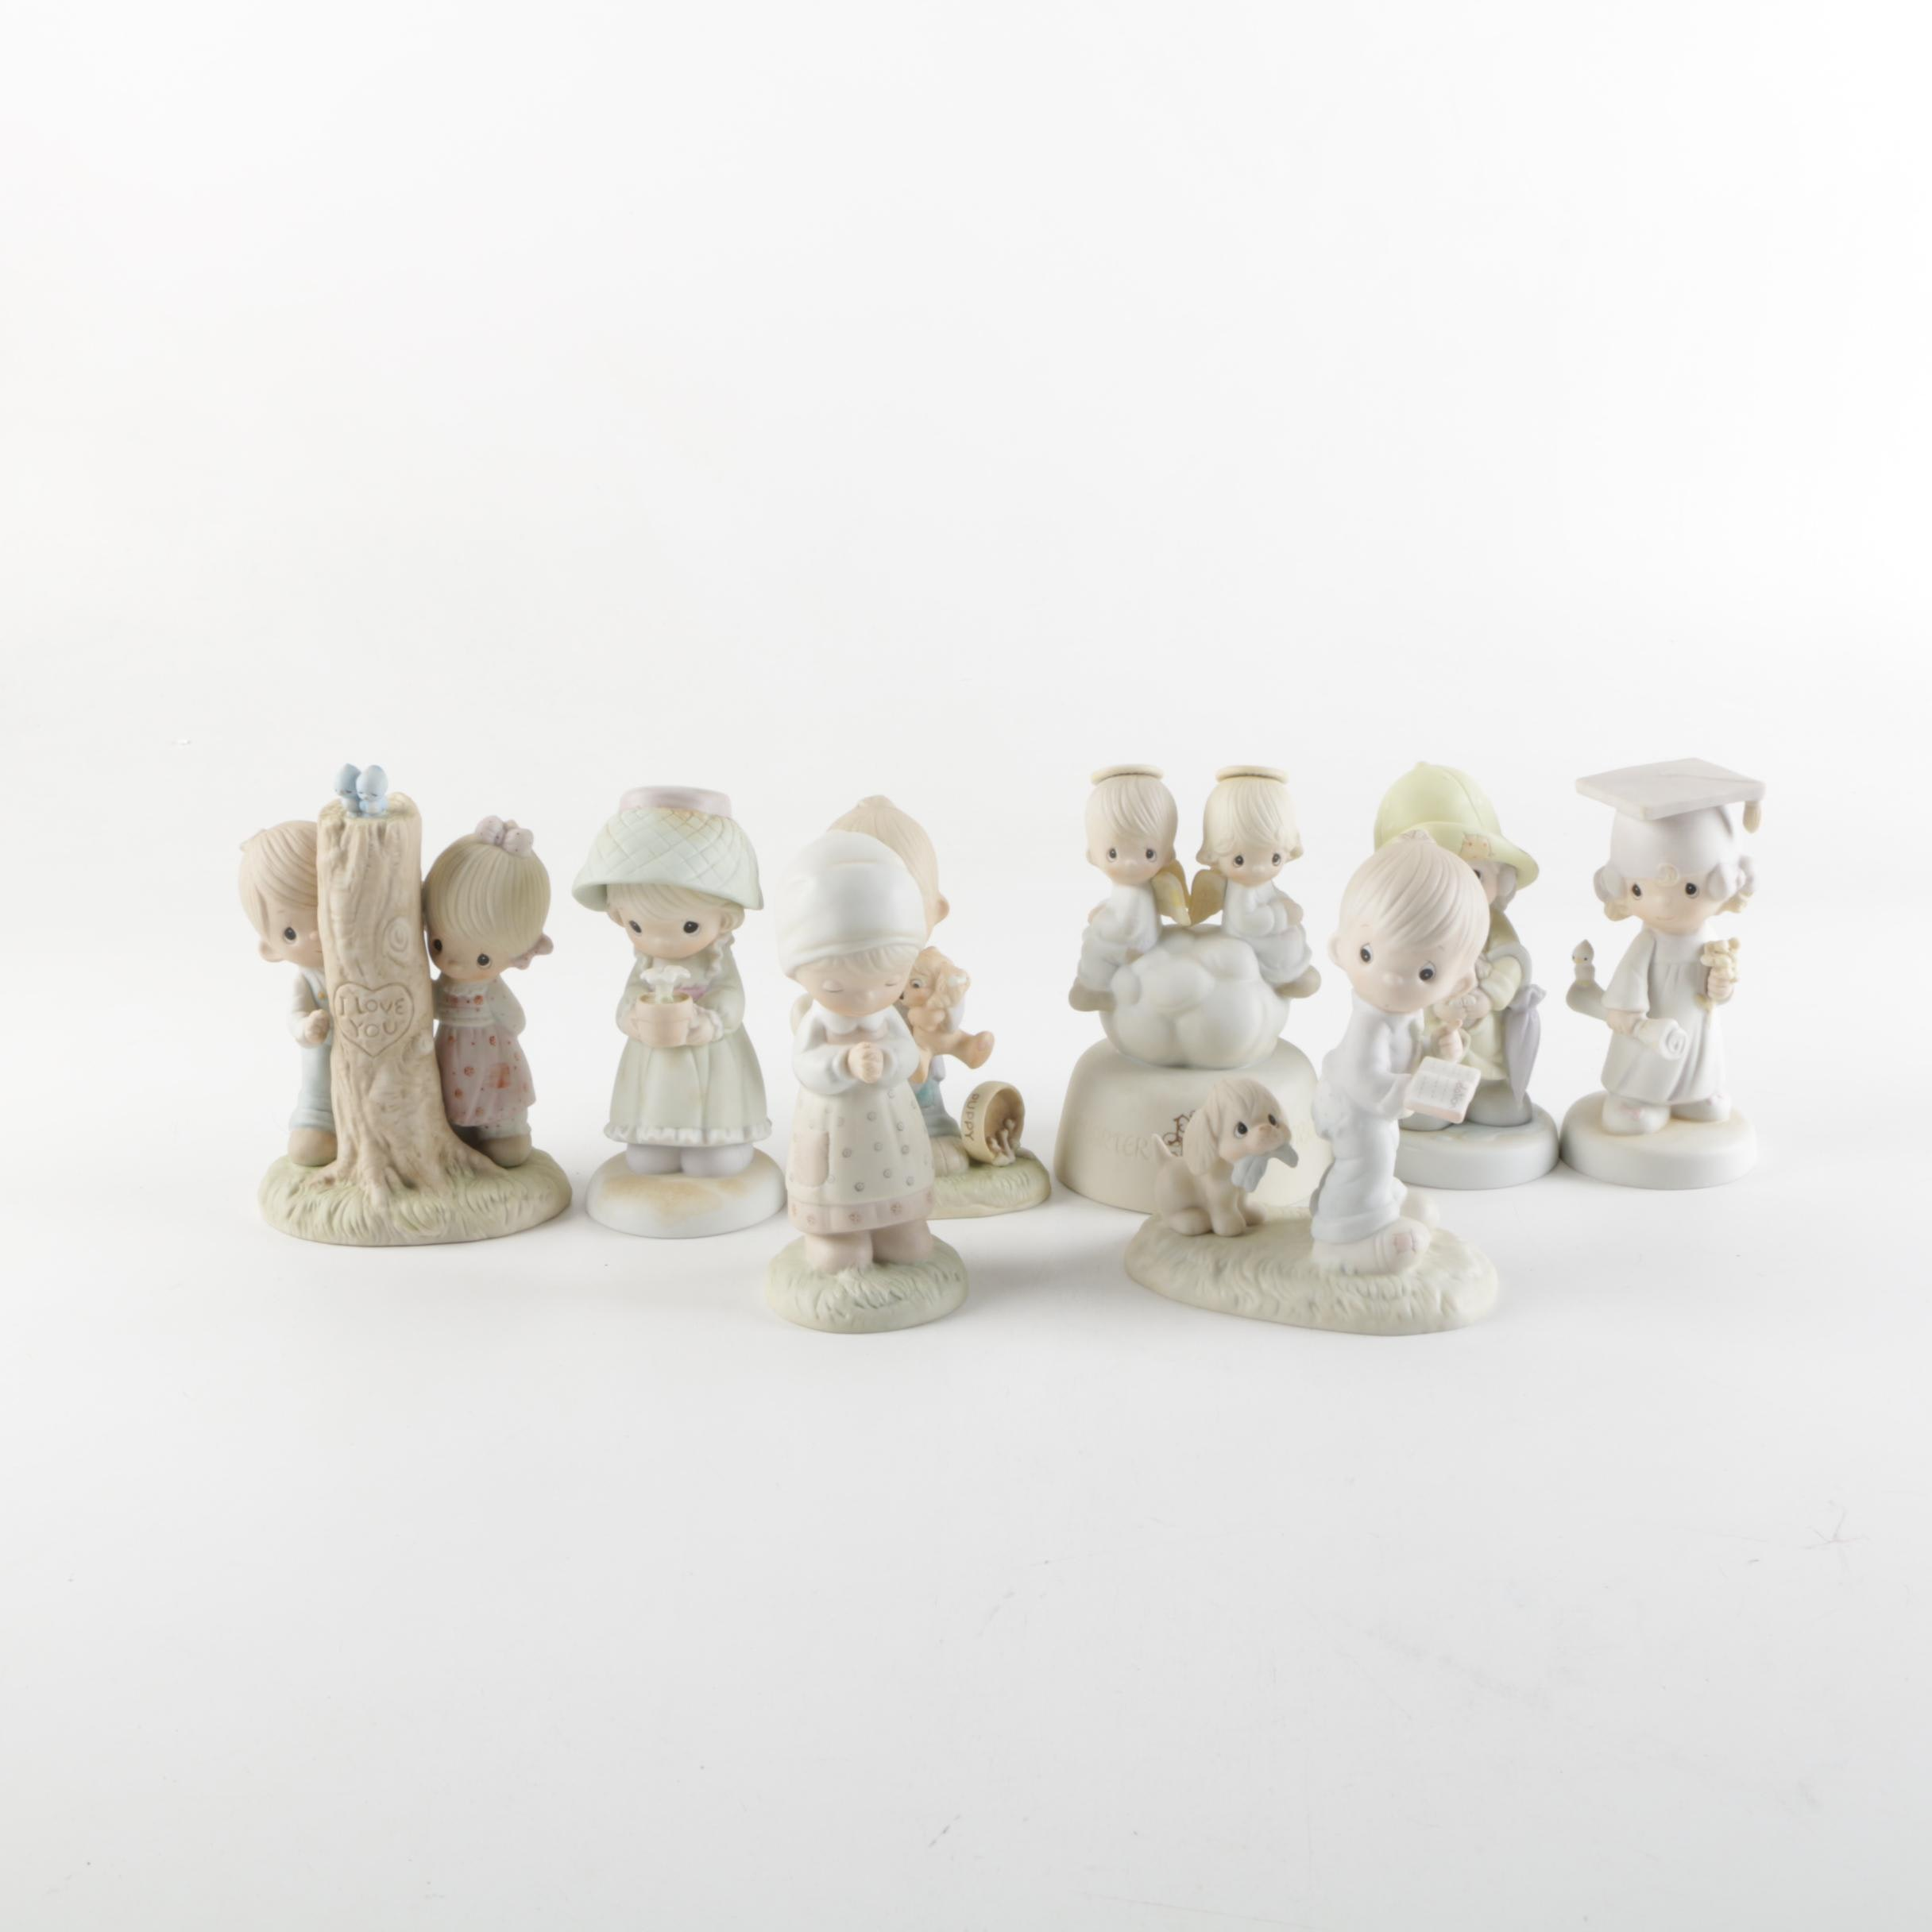 Collection of Precious Moments Figurines